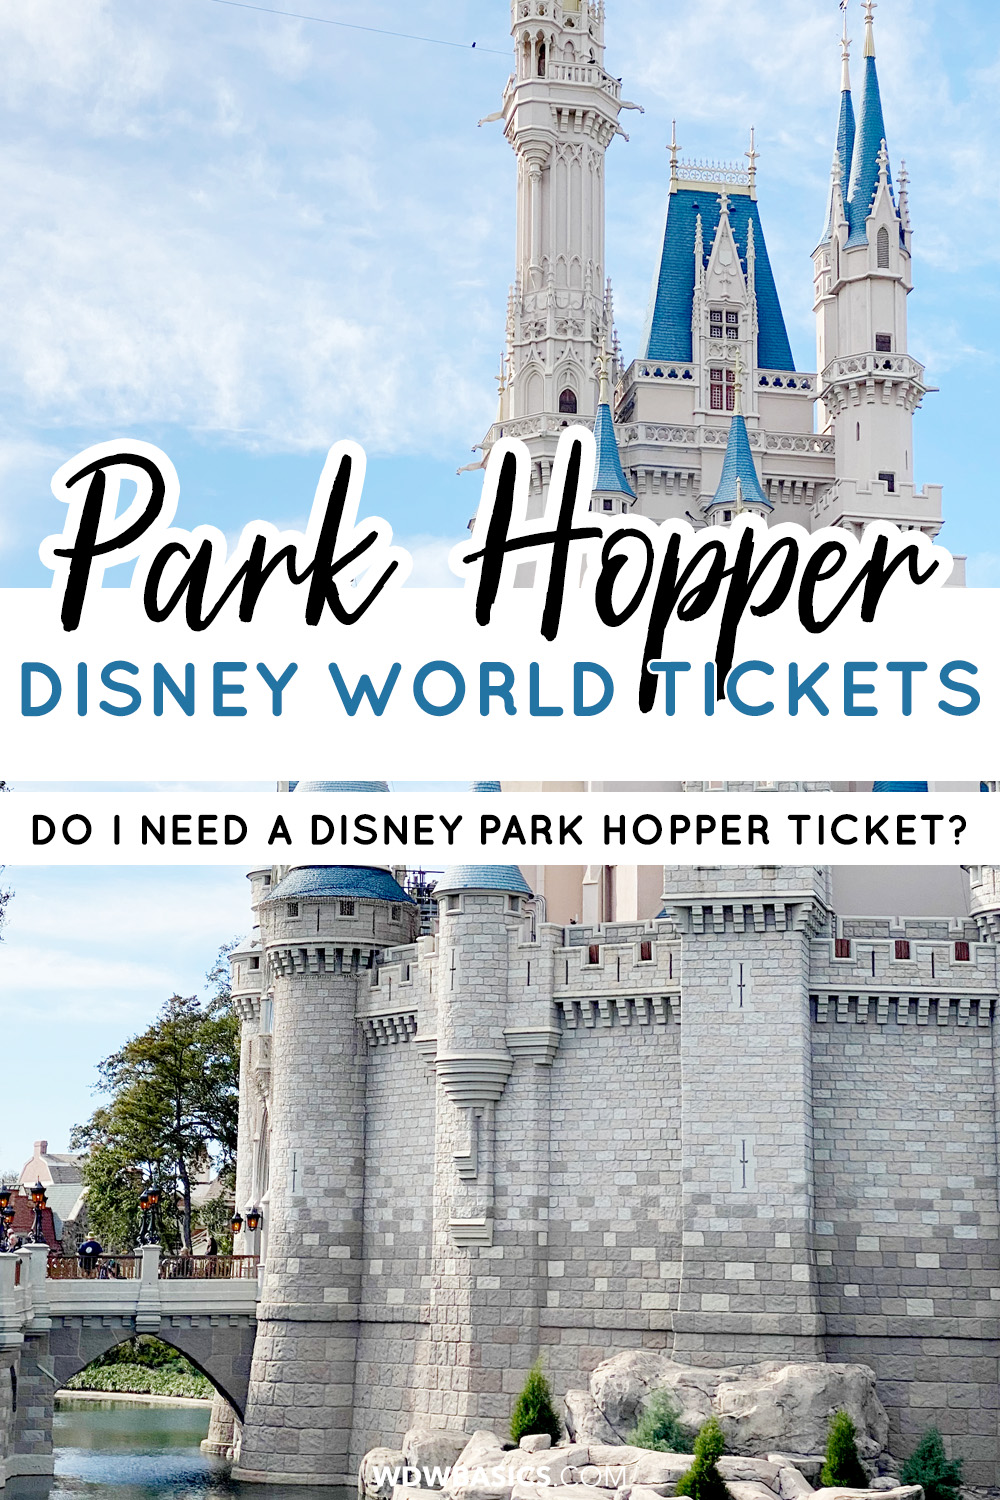 Do I need a Disney park hopper ticket?